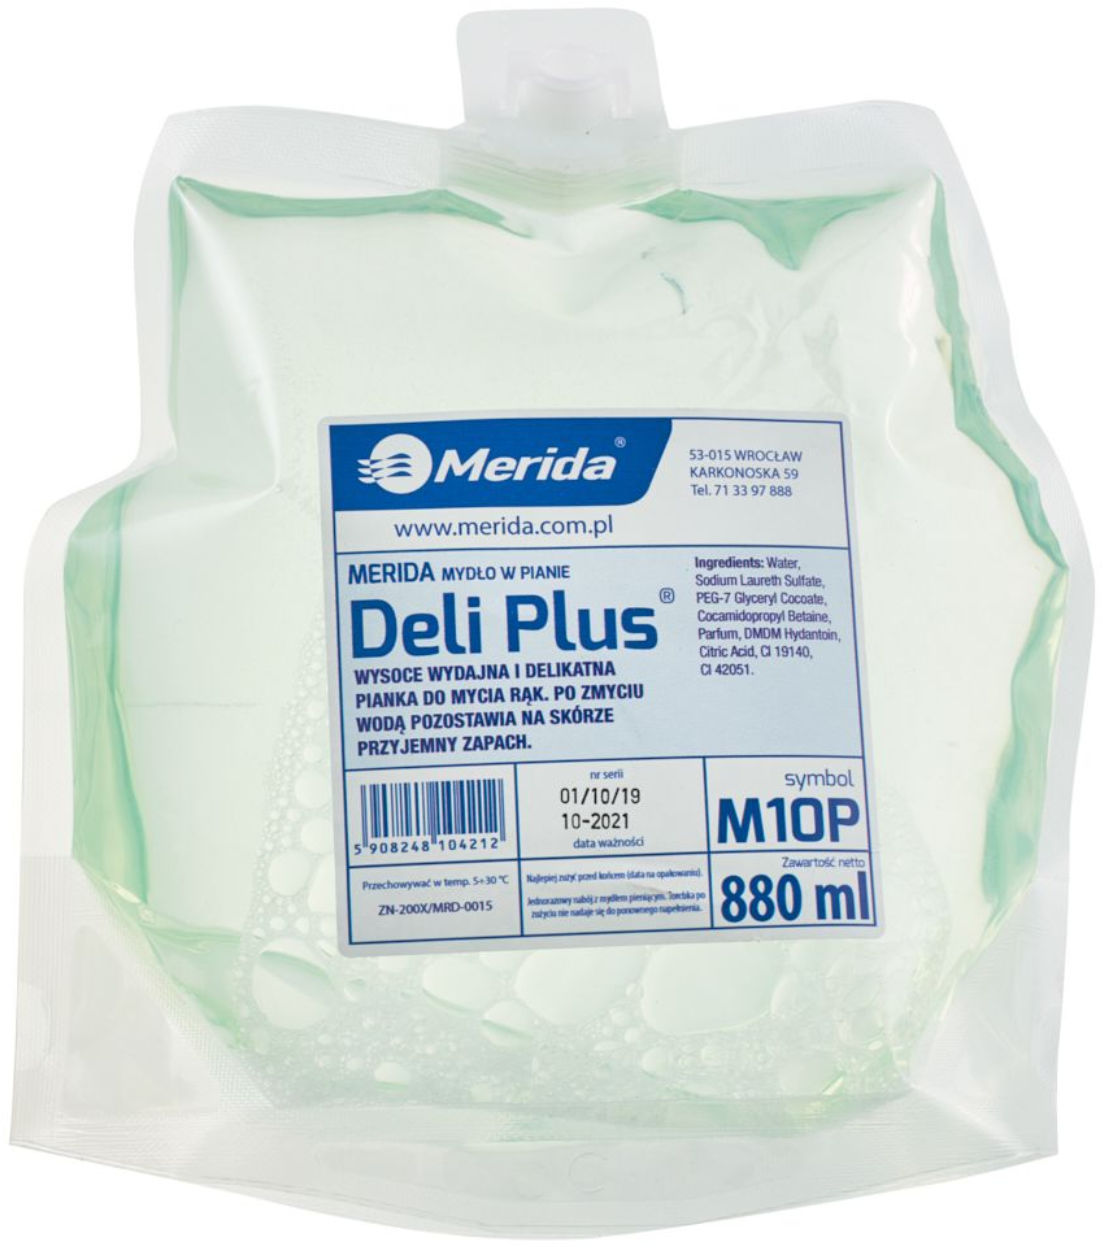 Mydło piana 880ml Deli Plus Merida M10P